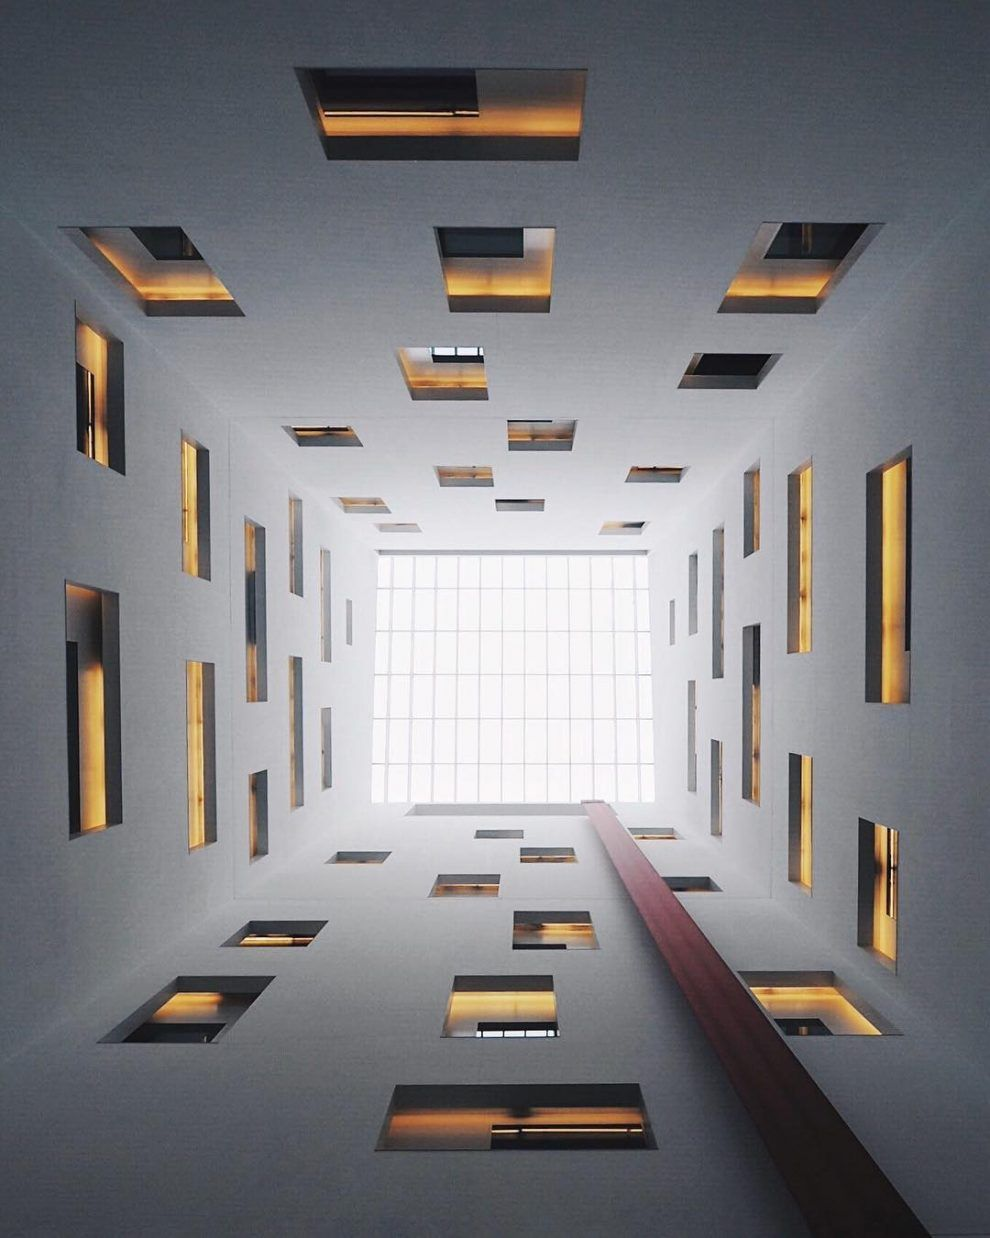 Chic Contemporary Spaces Rendered By Anh Nguyen: Breathtaking Architecture Photography By Anh Nguyen